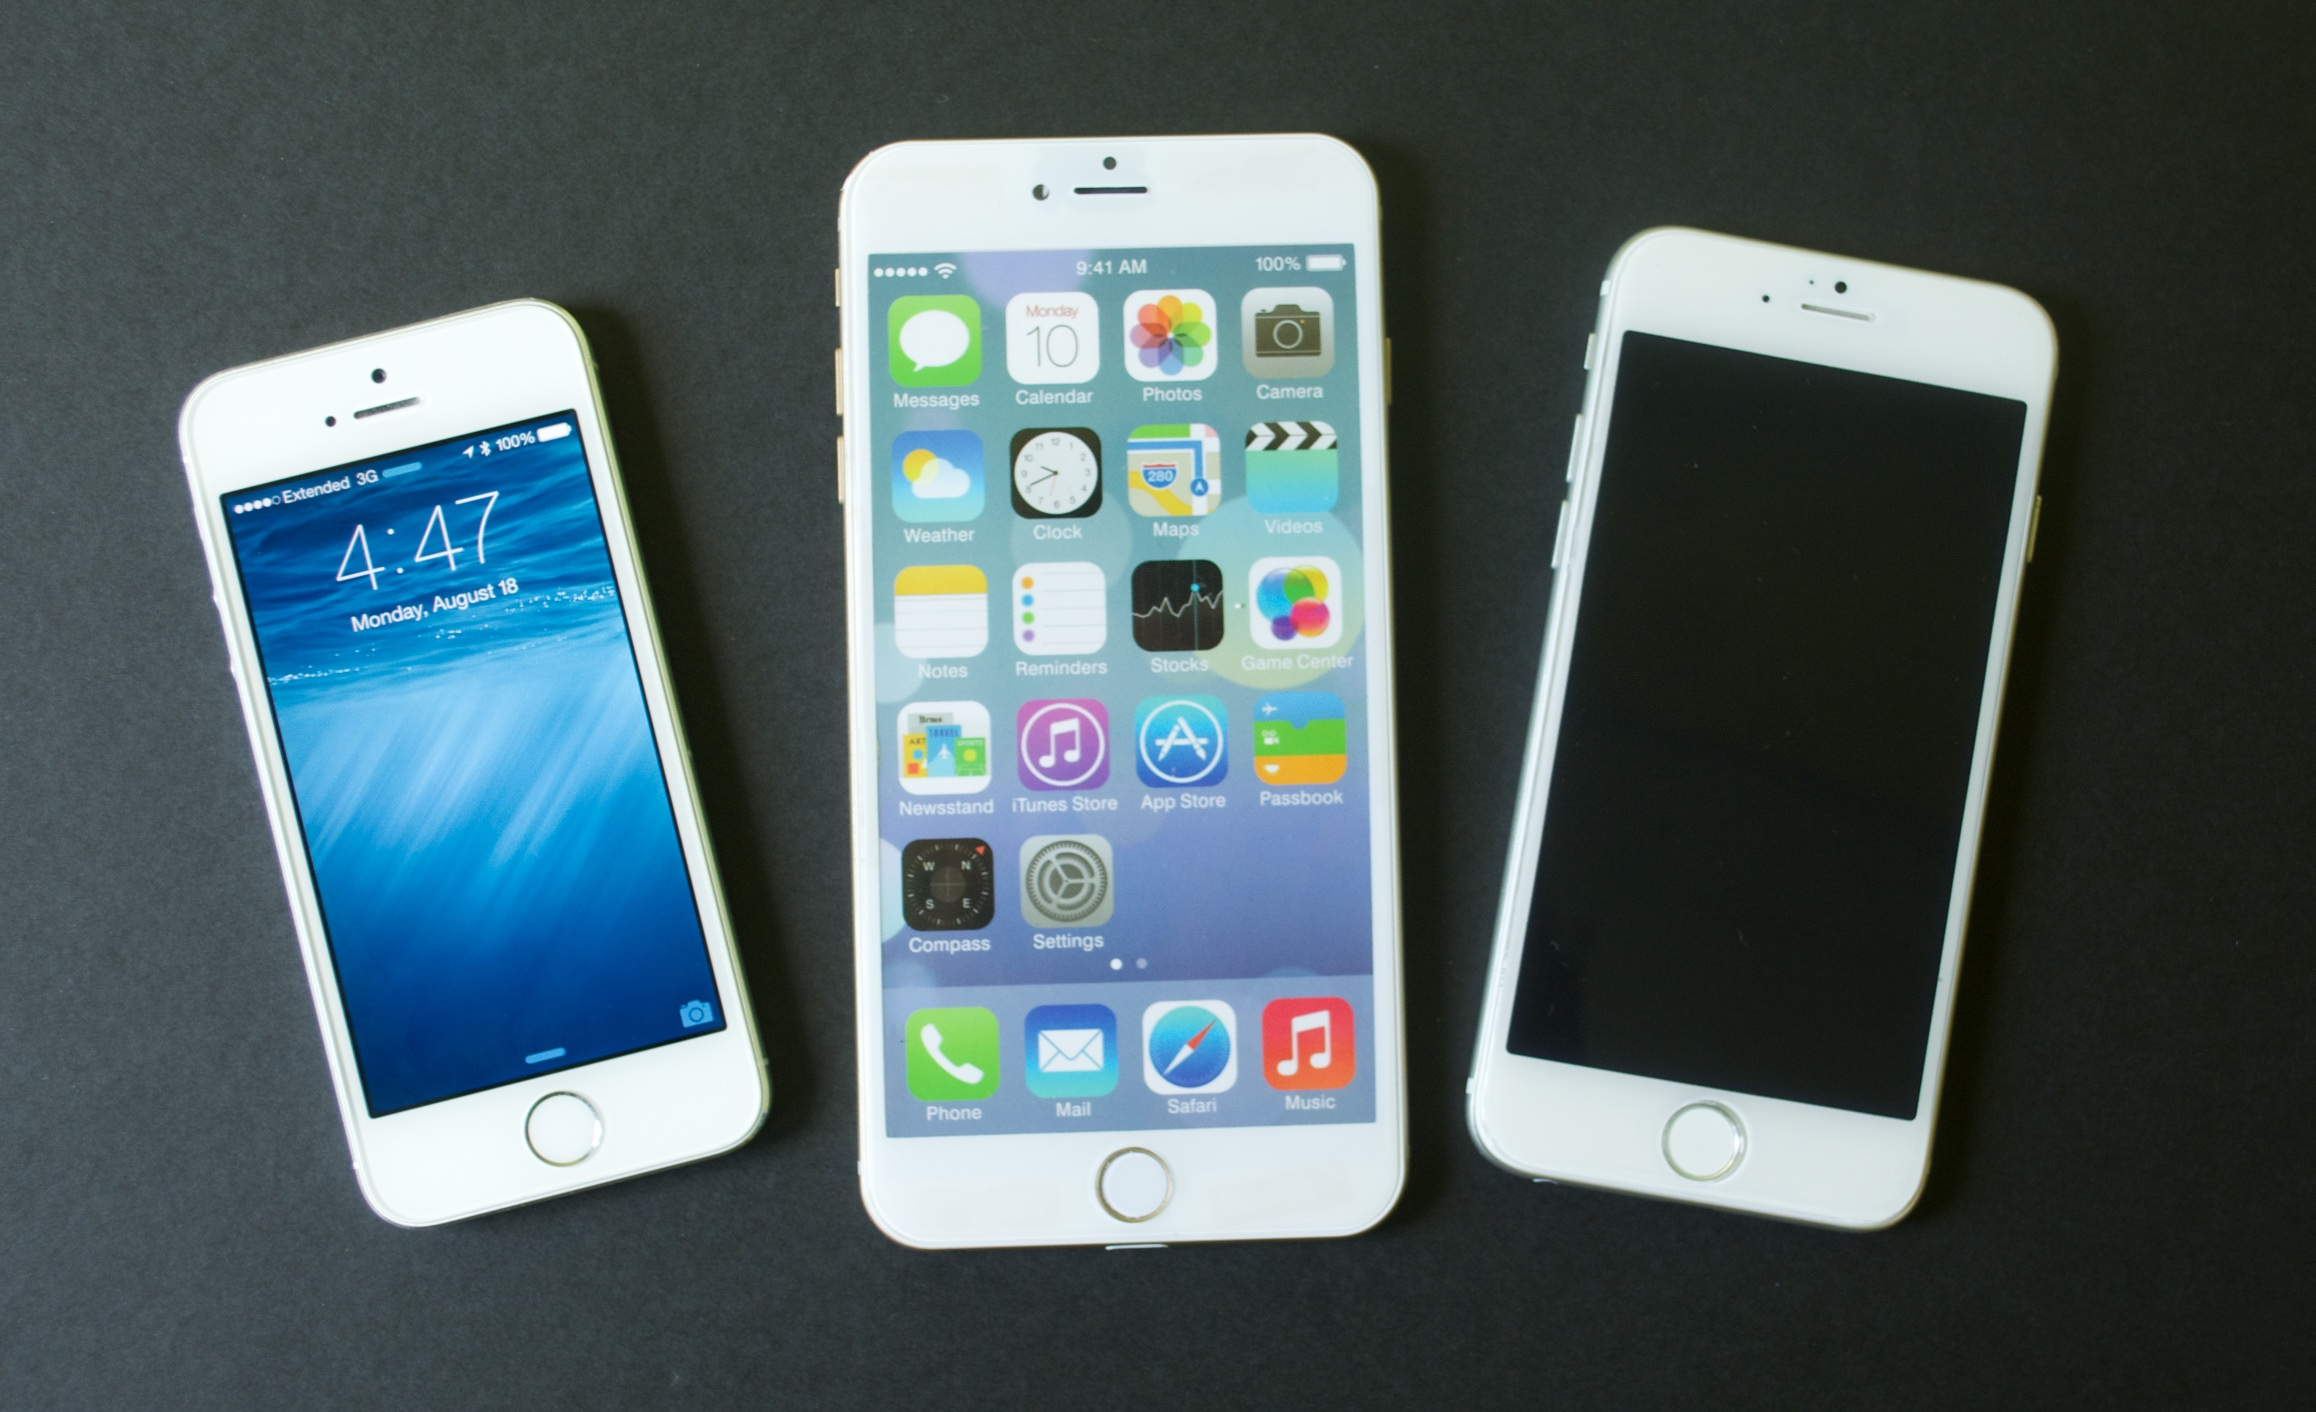 5.5-inch-iPhone-6-vs-iPhone-5s-7